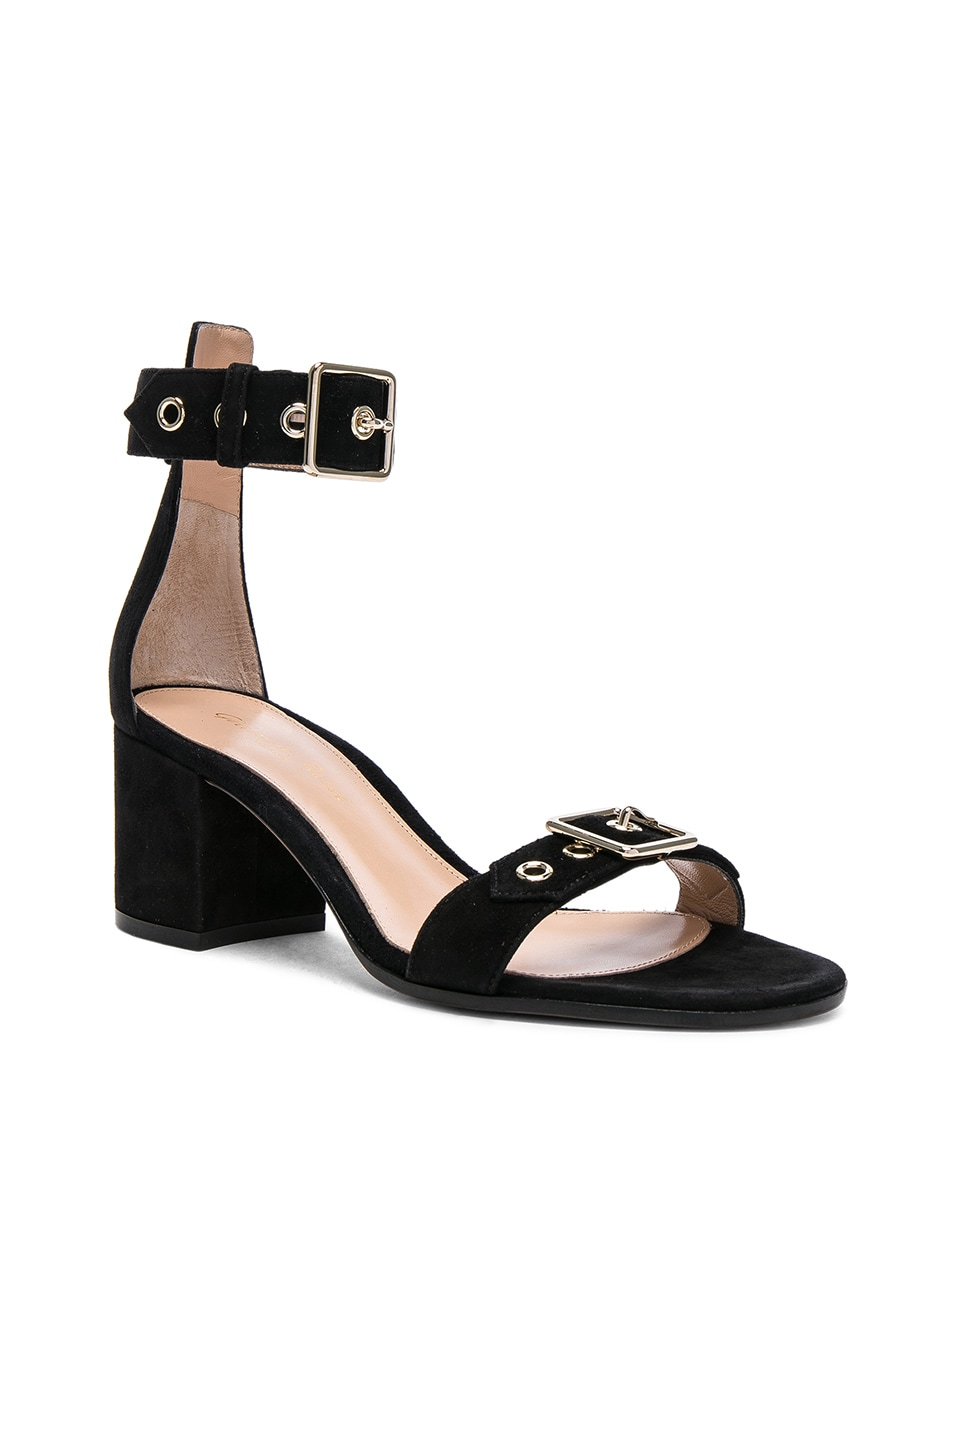 Image 2 of Gianvito Rossi Suede Buckle Detail Sandals in Black